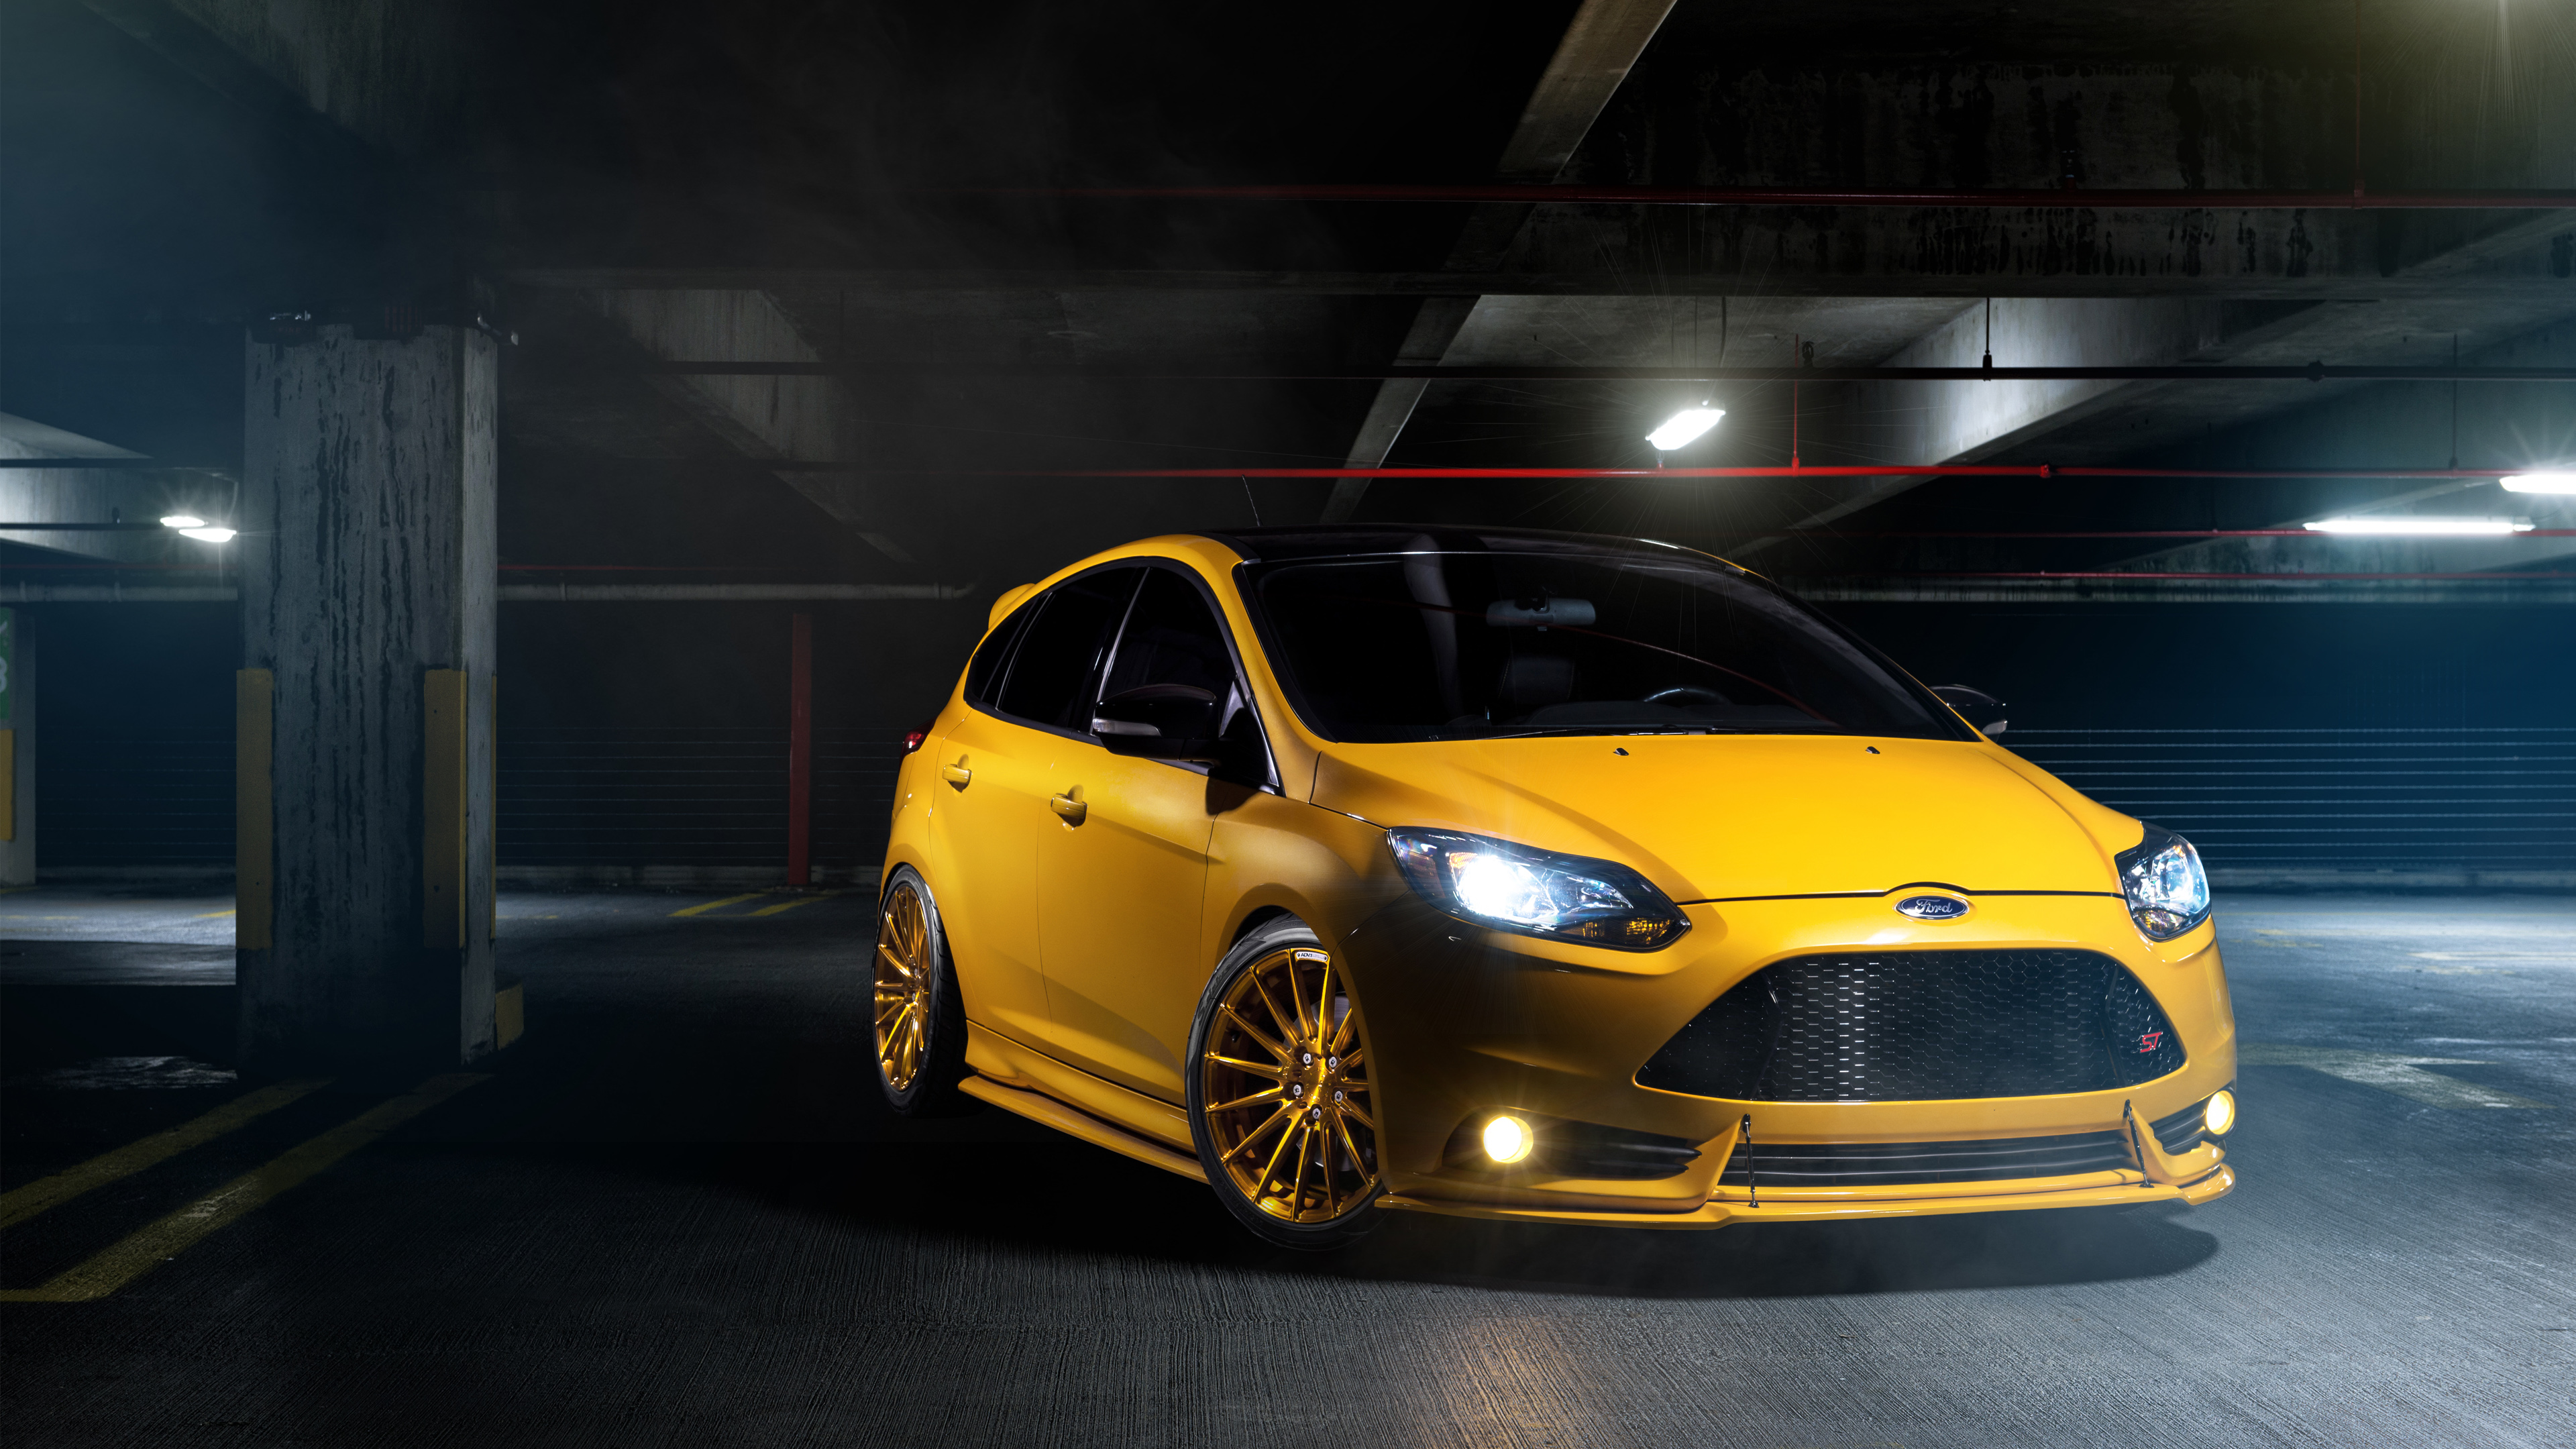 Ford Focus St Wallpaper Hd Car Wallpapers Id 5533